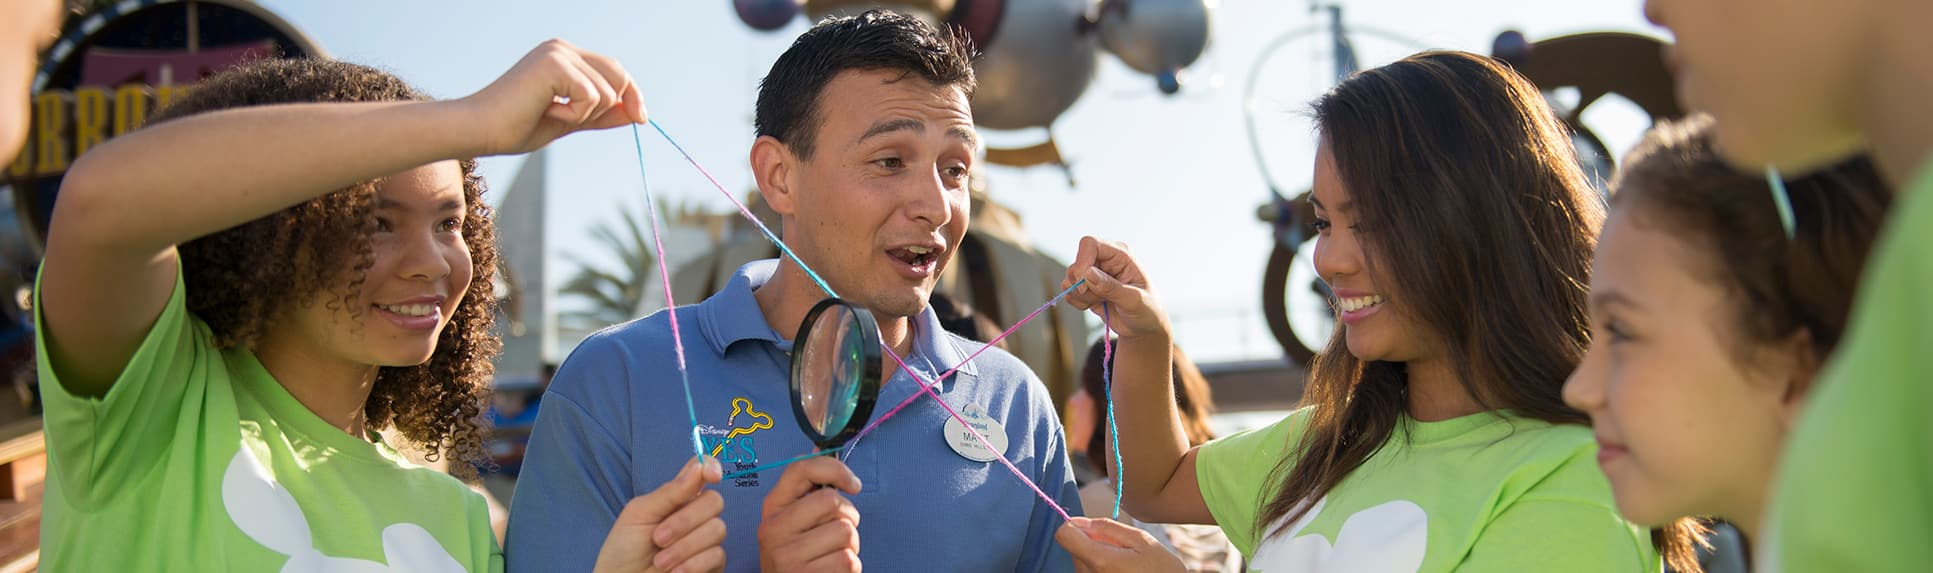 A Cast Member holding a magnifying glass and high school children holding a string in the shape of 2 triangles